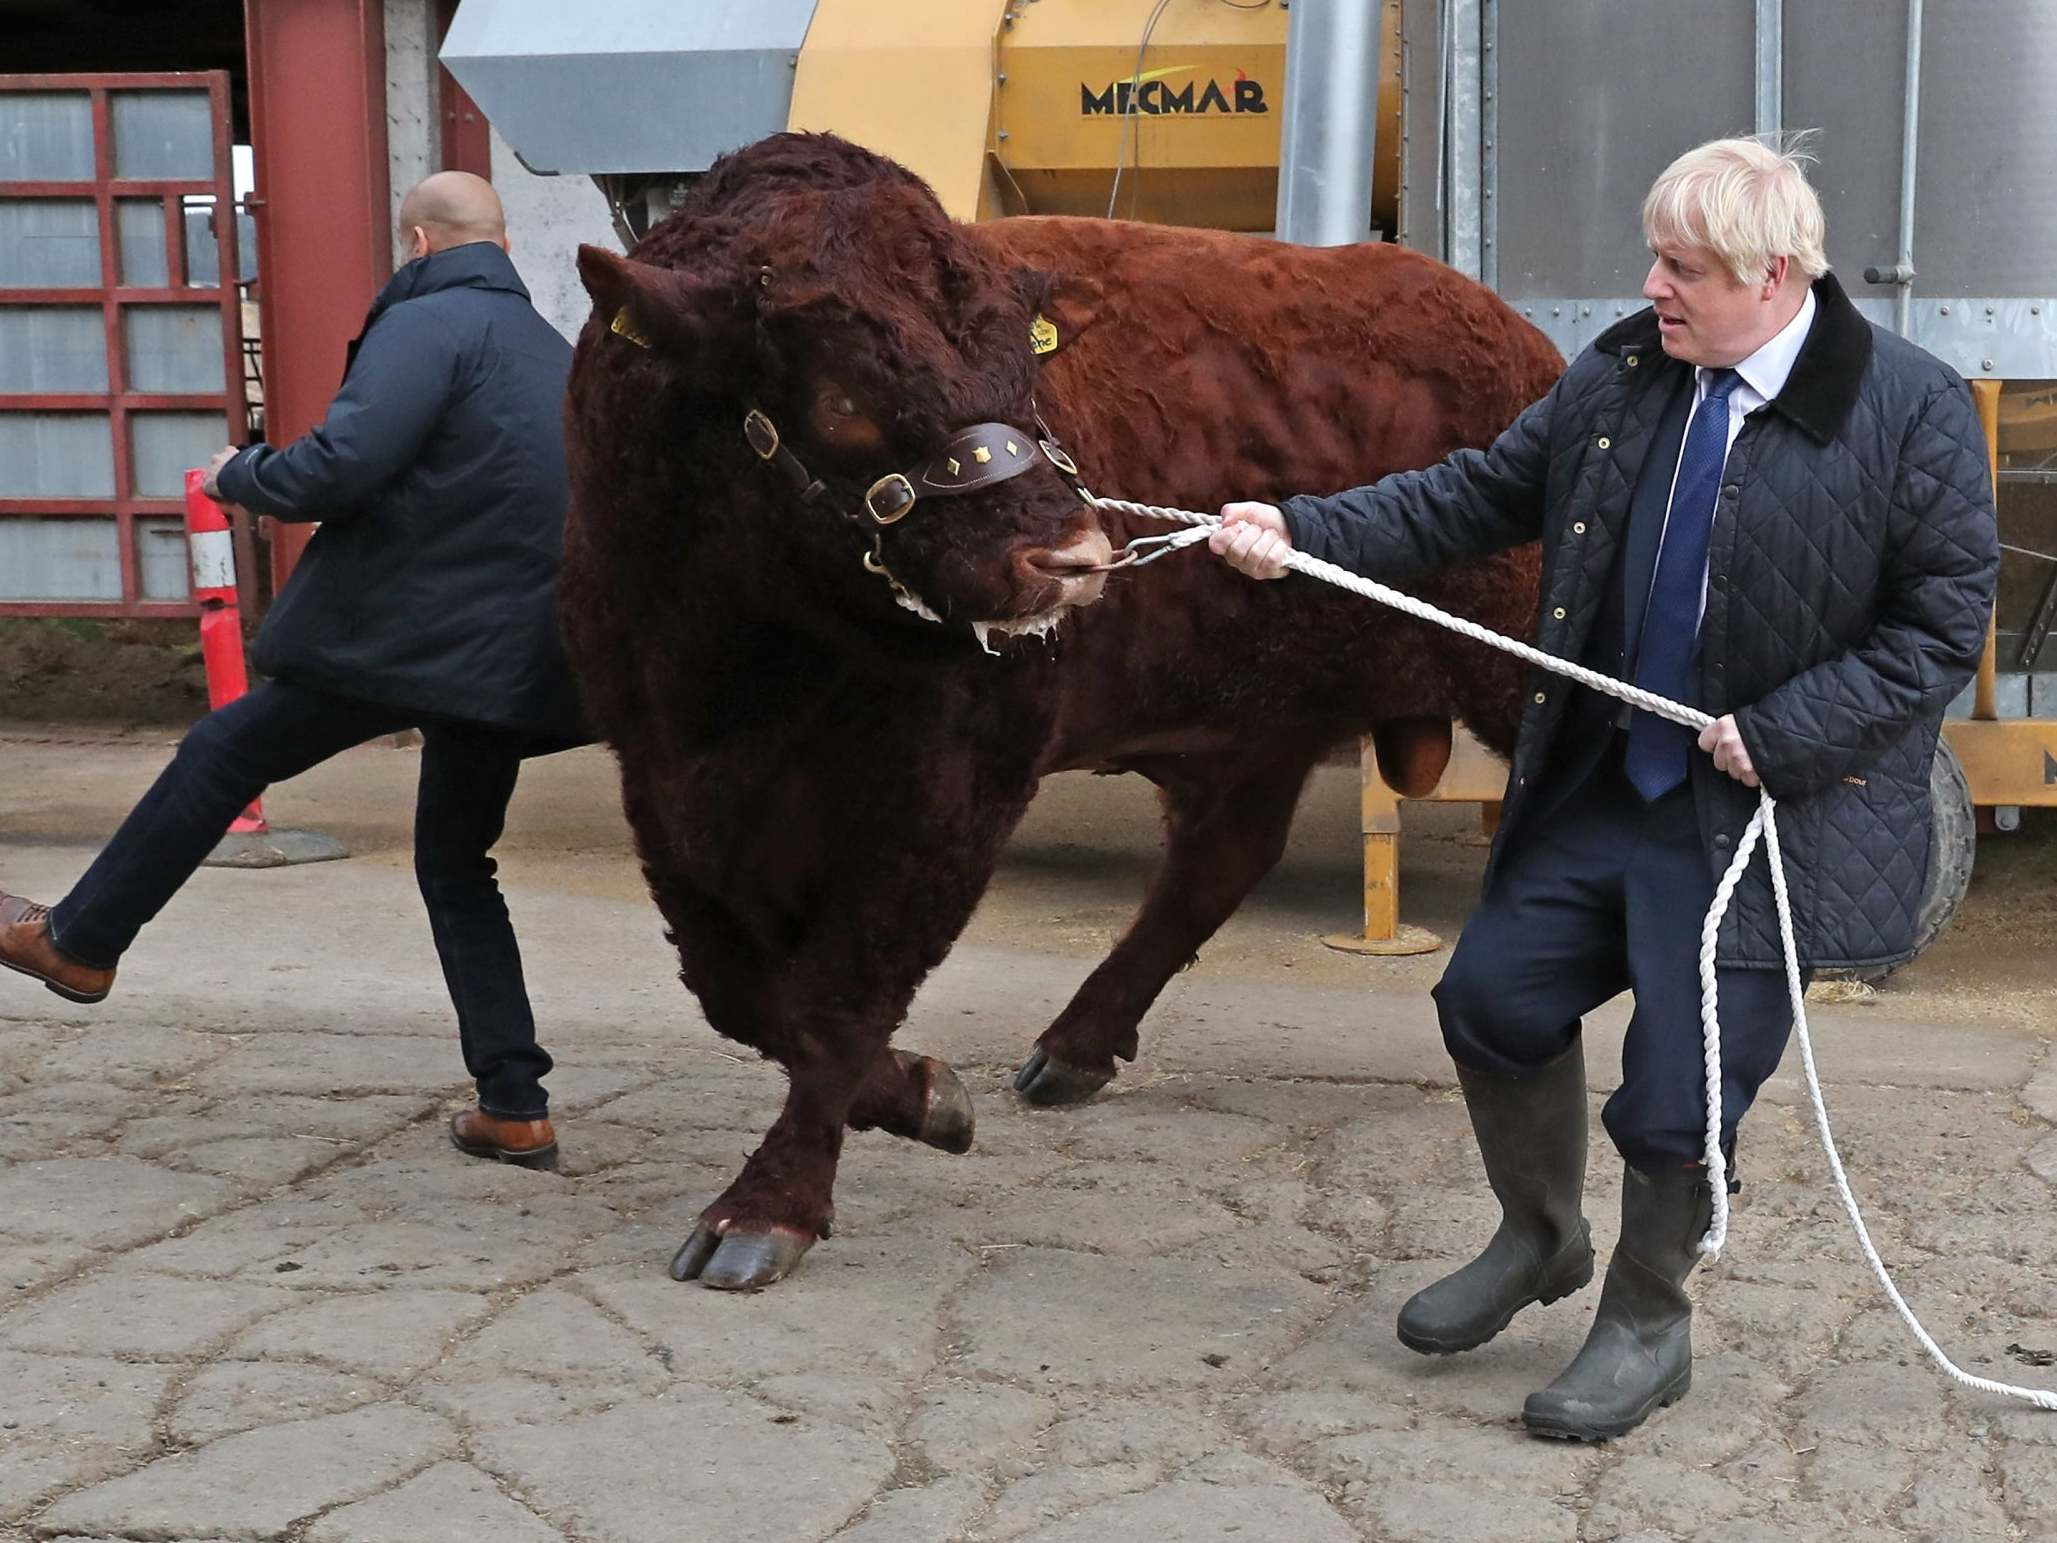 Boris Johnson news: Parliament passes law to halt no-deal Brexit, as PM insists Loch Ness monster could exist and grapples with bull